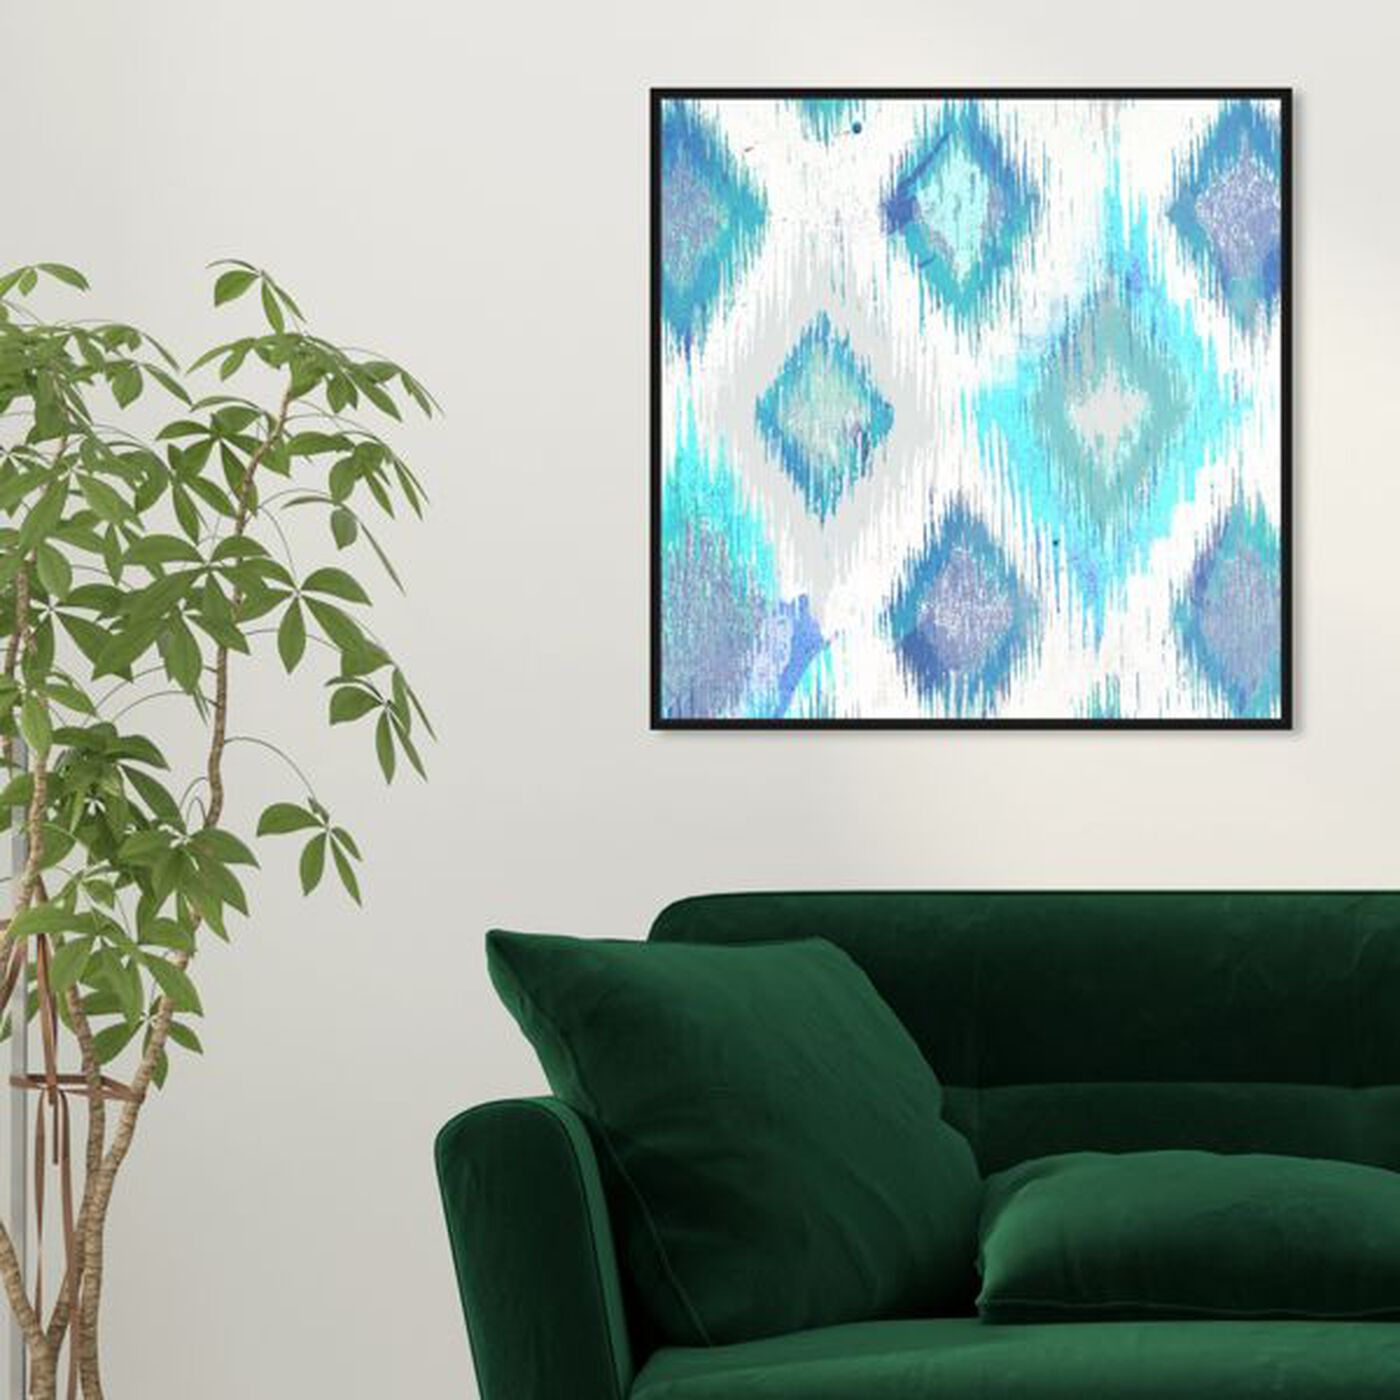 Hanging view of Del Mar featuring abstract and geometric art.